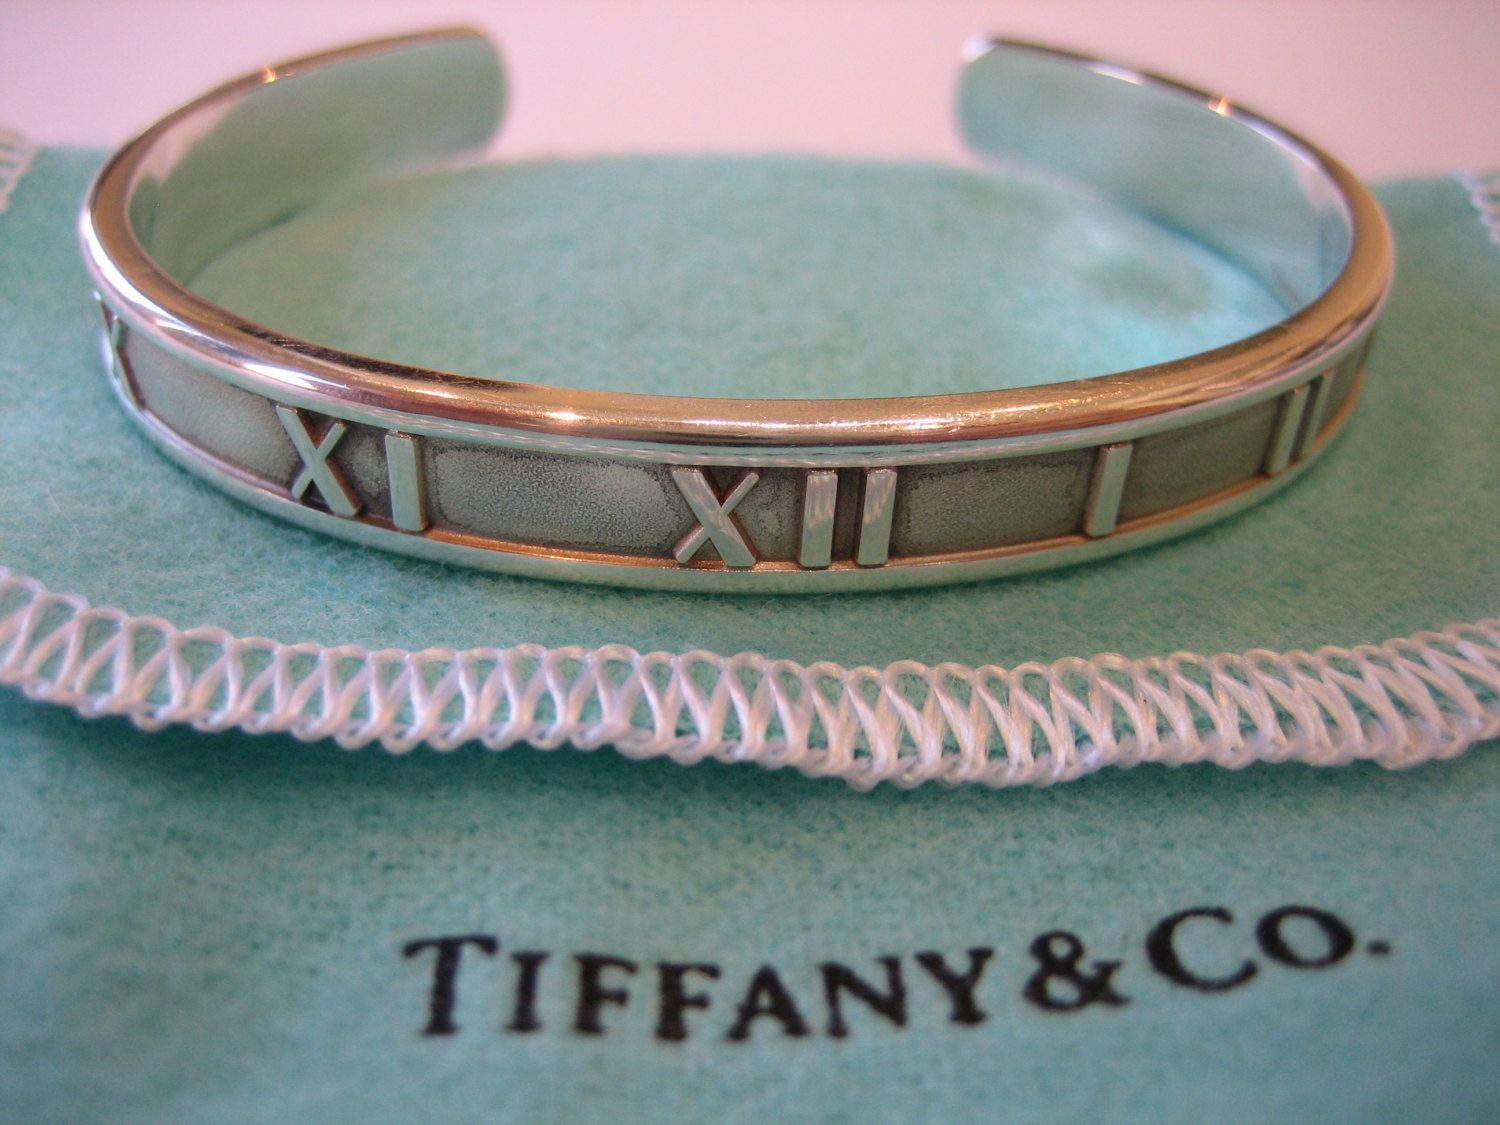 c4e6db2cc AUTHENTIC Vintage Tiffany & Co. Small Silver Atlas Roman Numeral Cuff  Bracelet Bangle by CLASSYBAG on Etsy